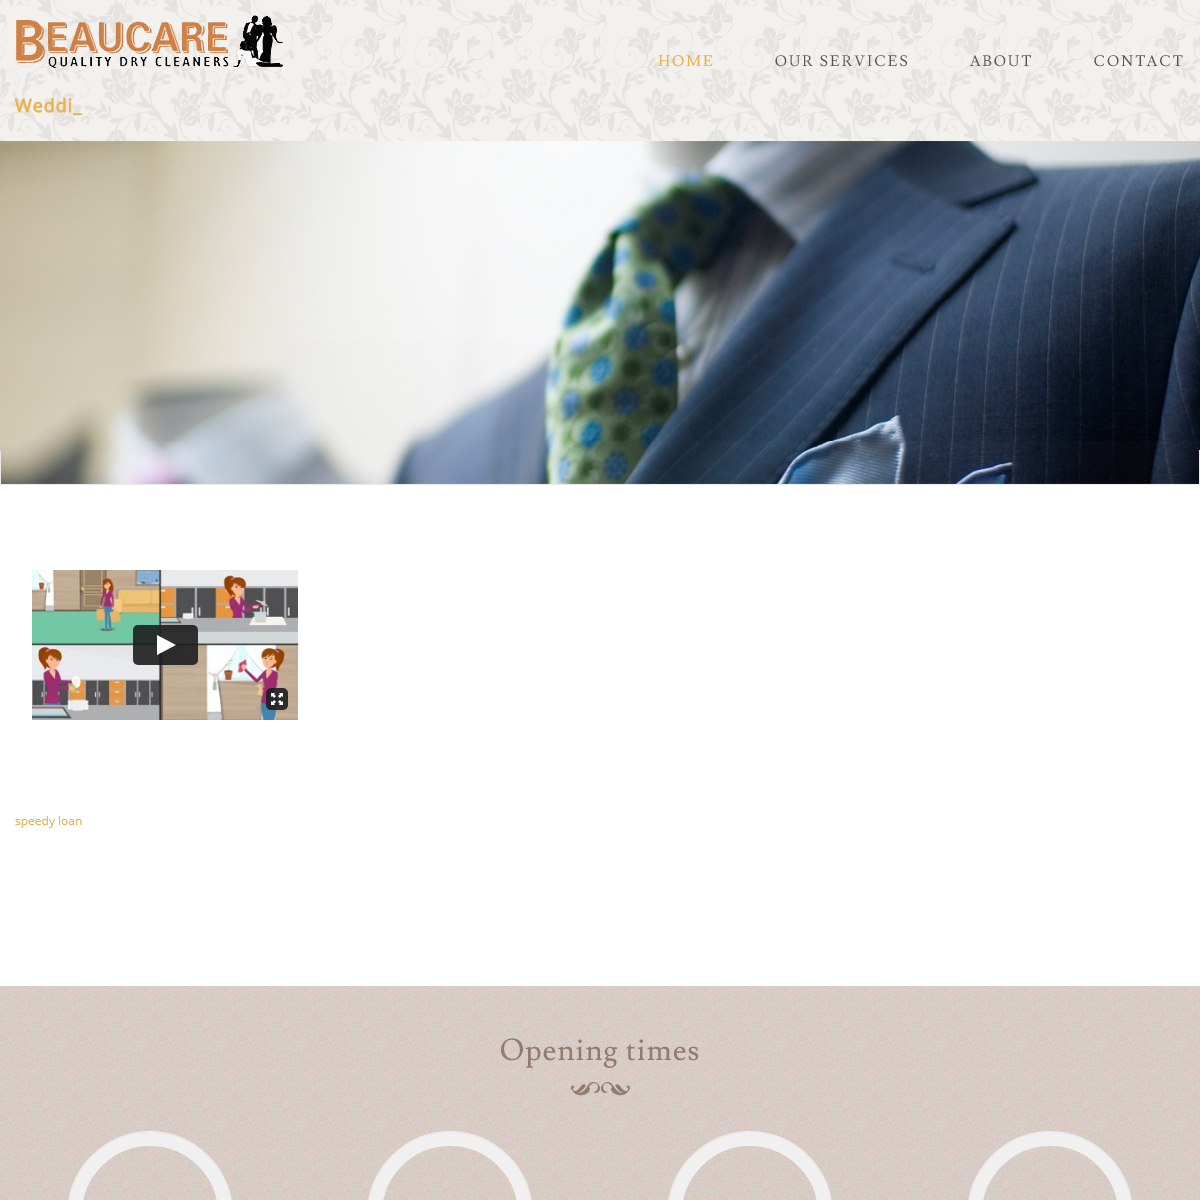 A complete backup of beaucare.co.uk